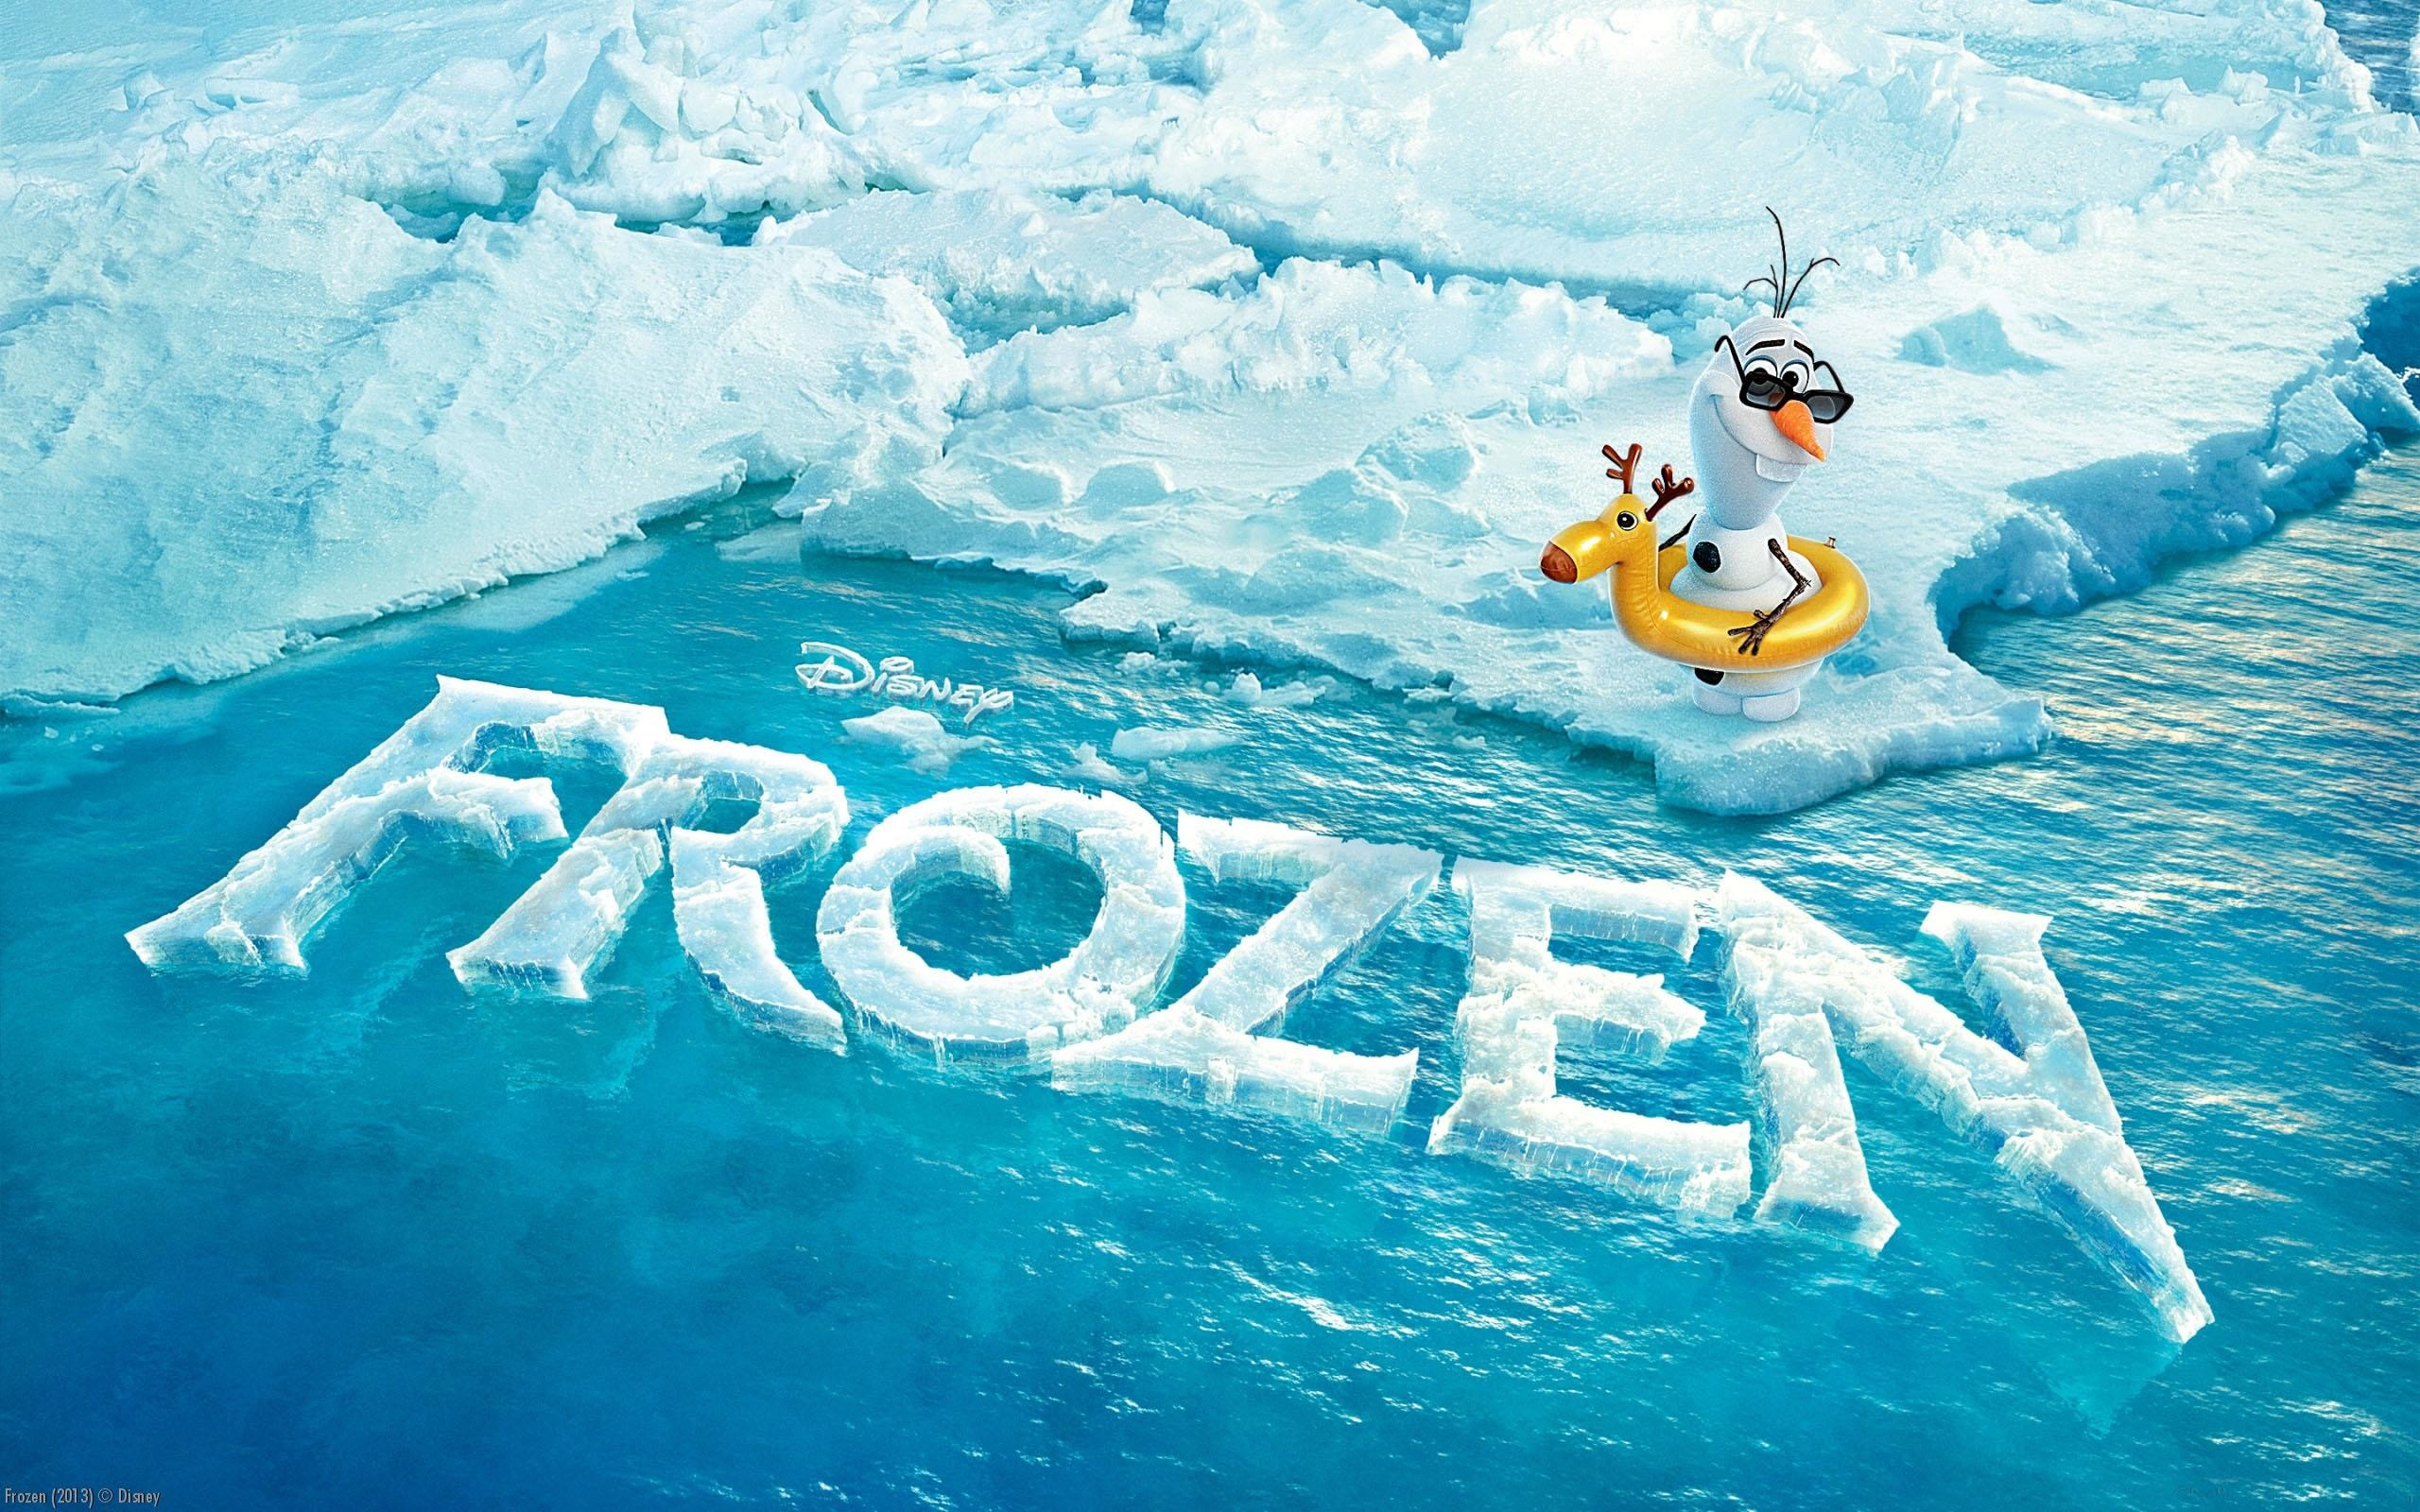 Res: 2560x1600, Disney Frozen Wallpaper